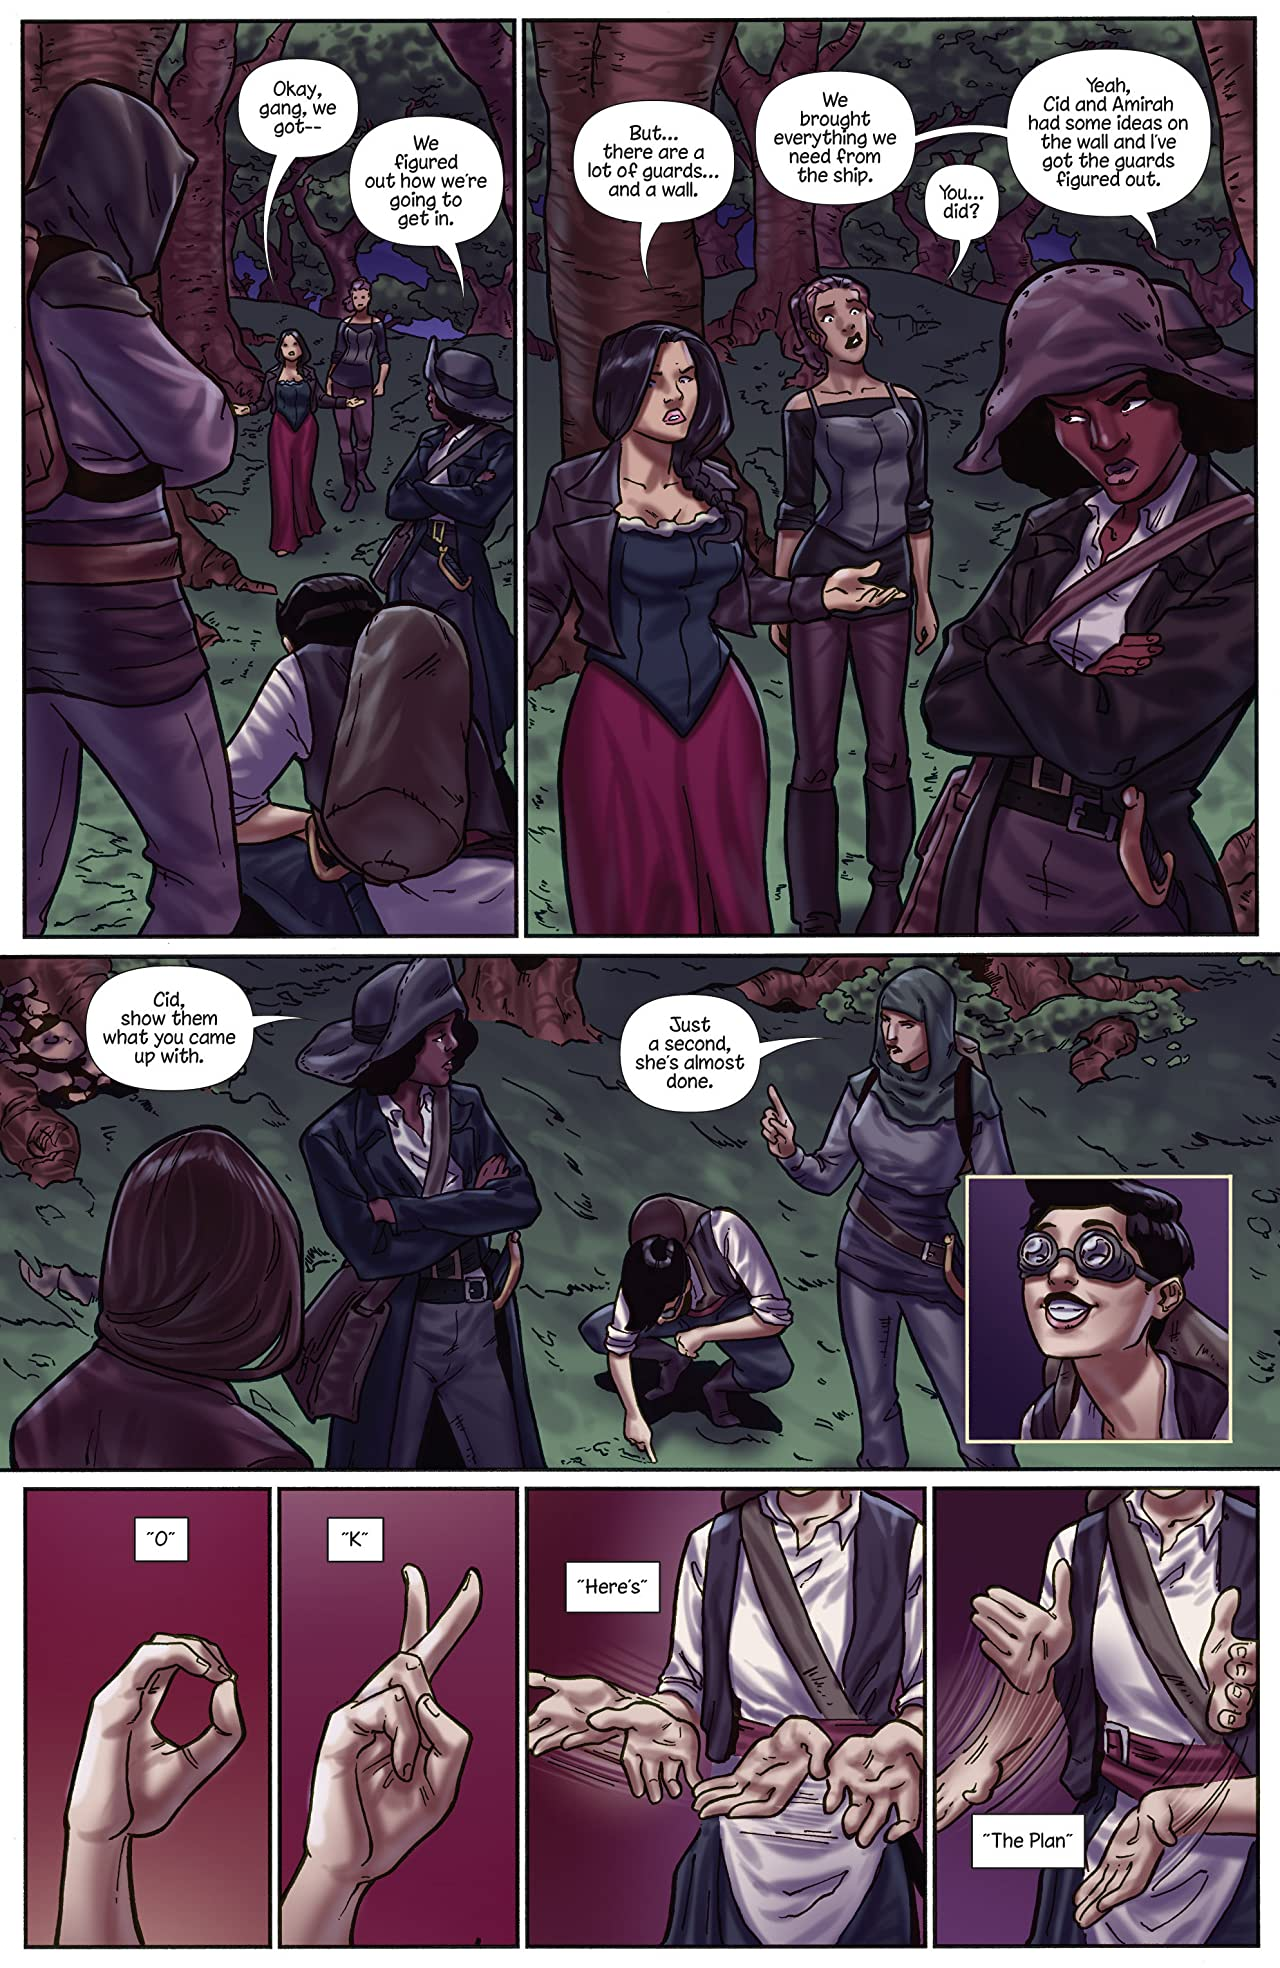 Princeless- Raven: The Pirate Princess #8